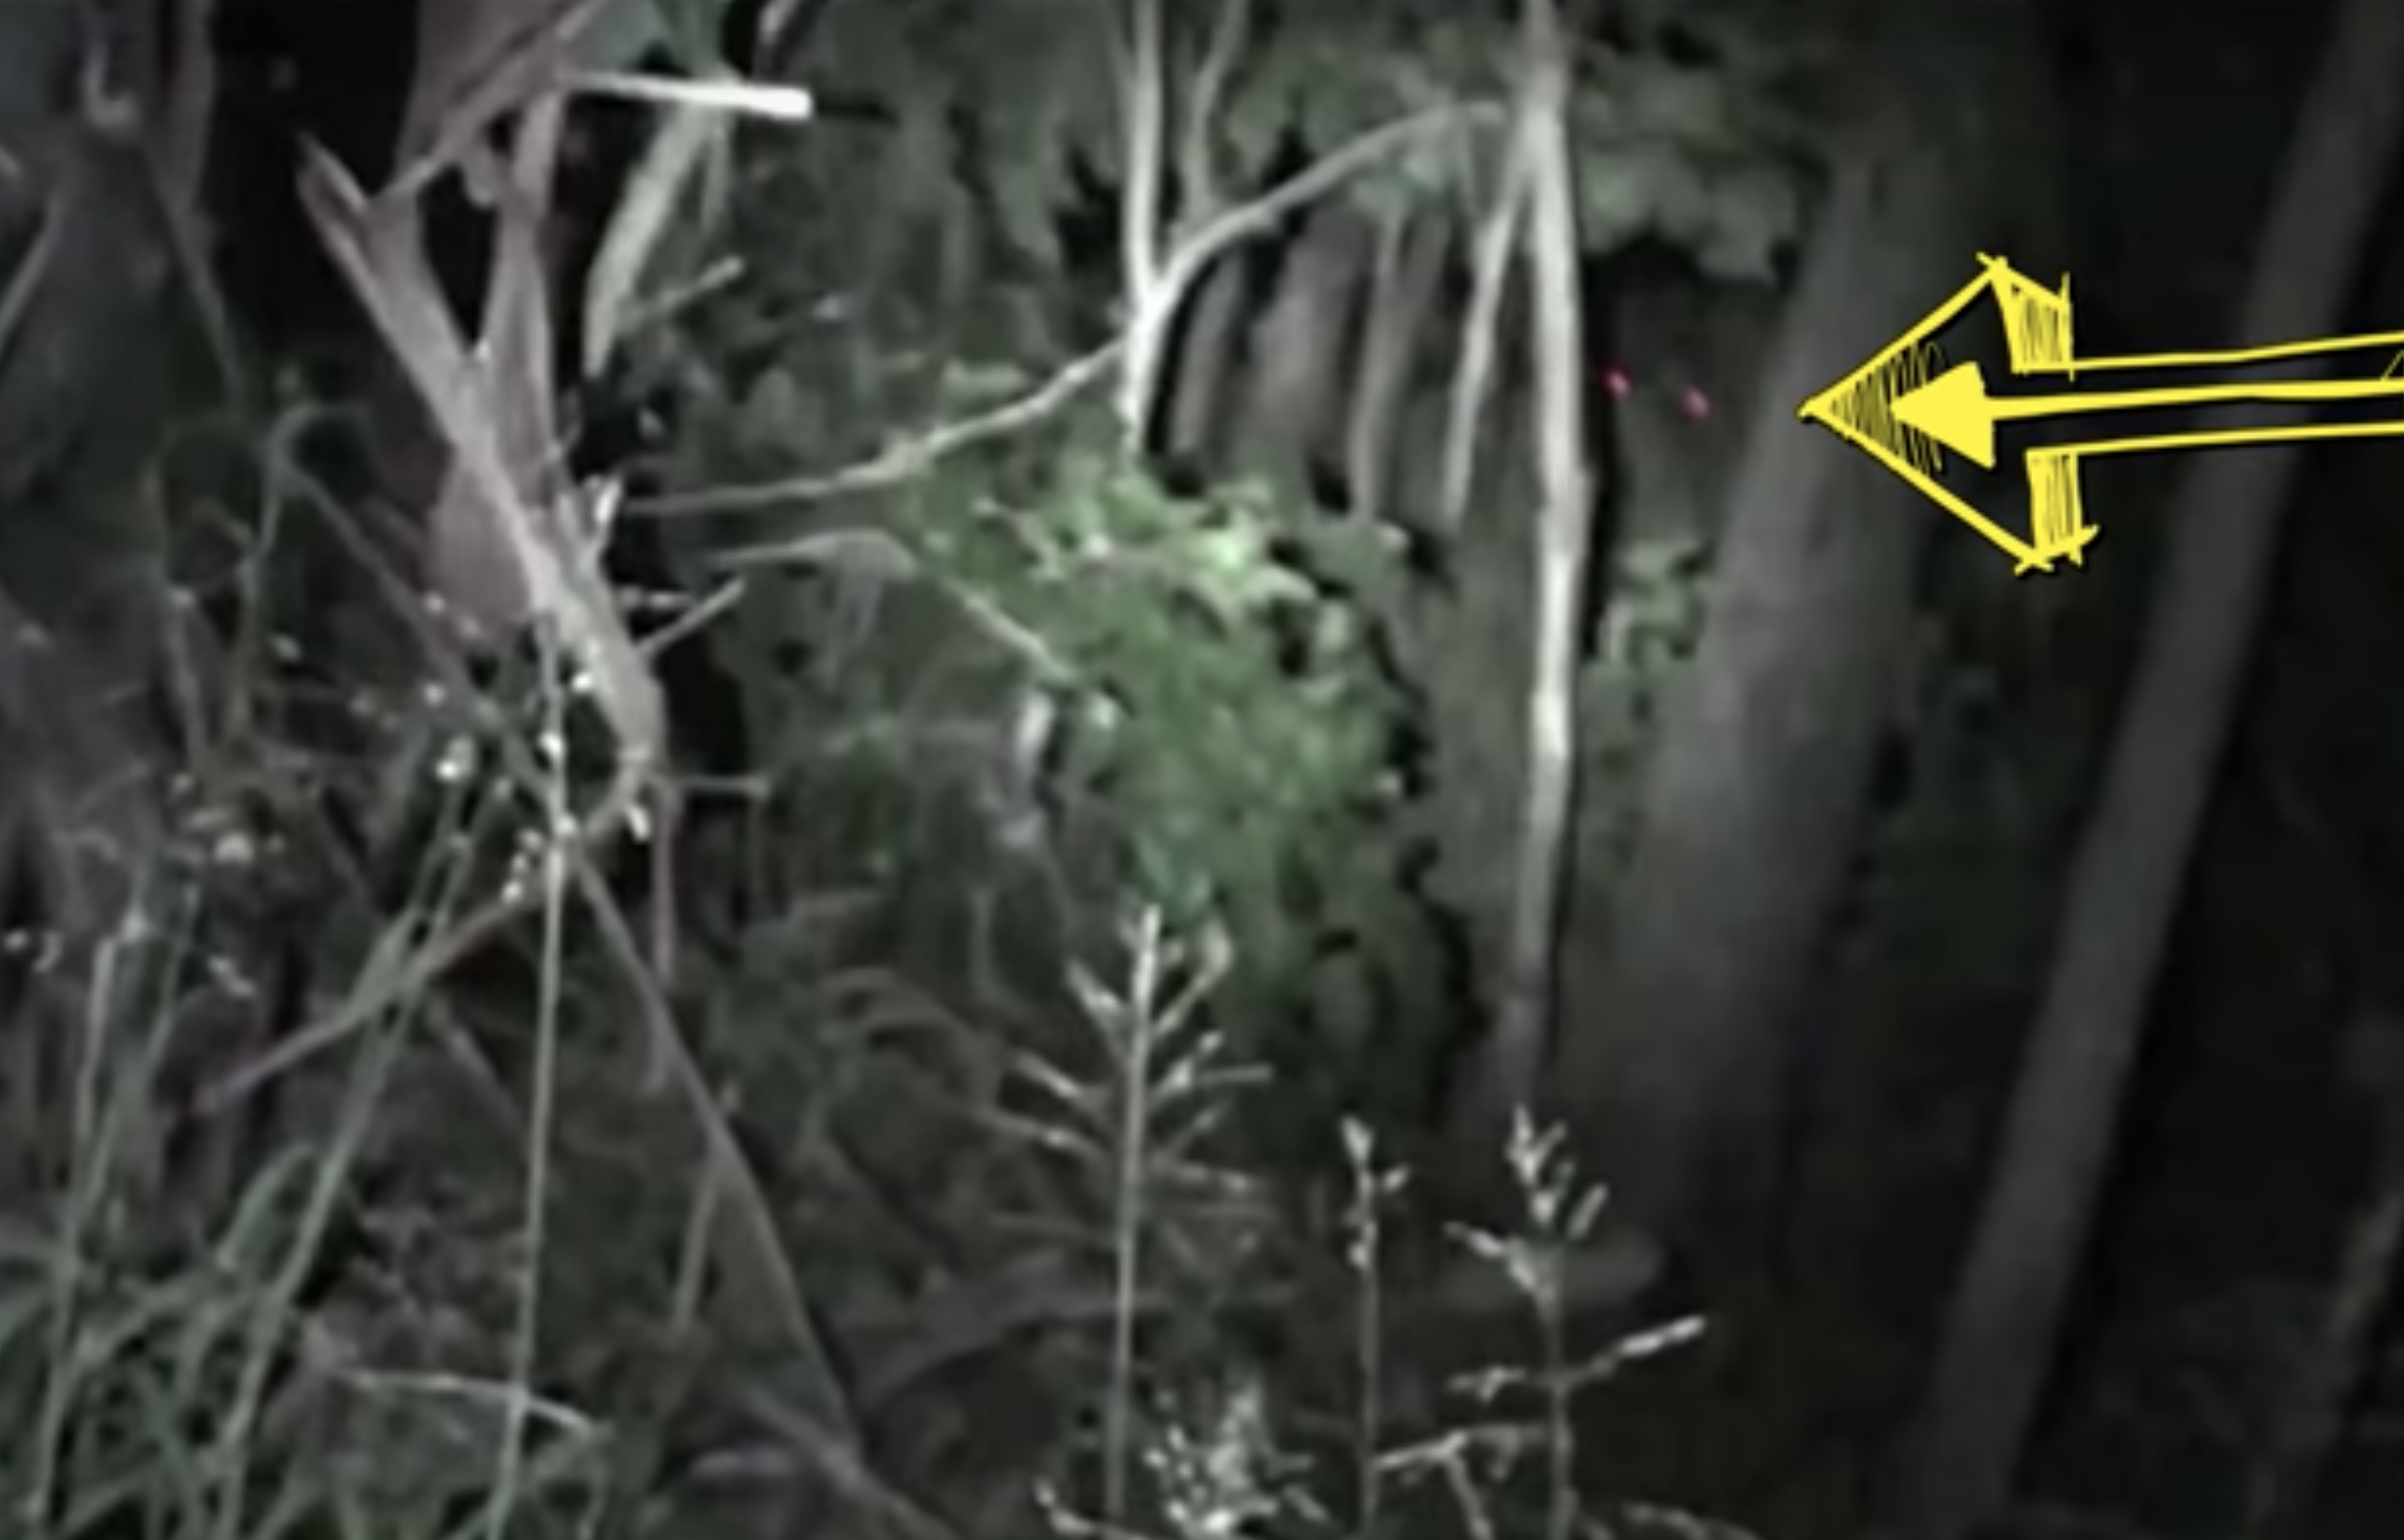 Red Eyes was reportedly caught on    video    in Australia in 2018